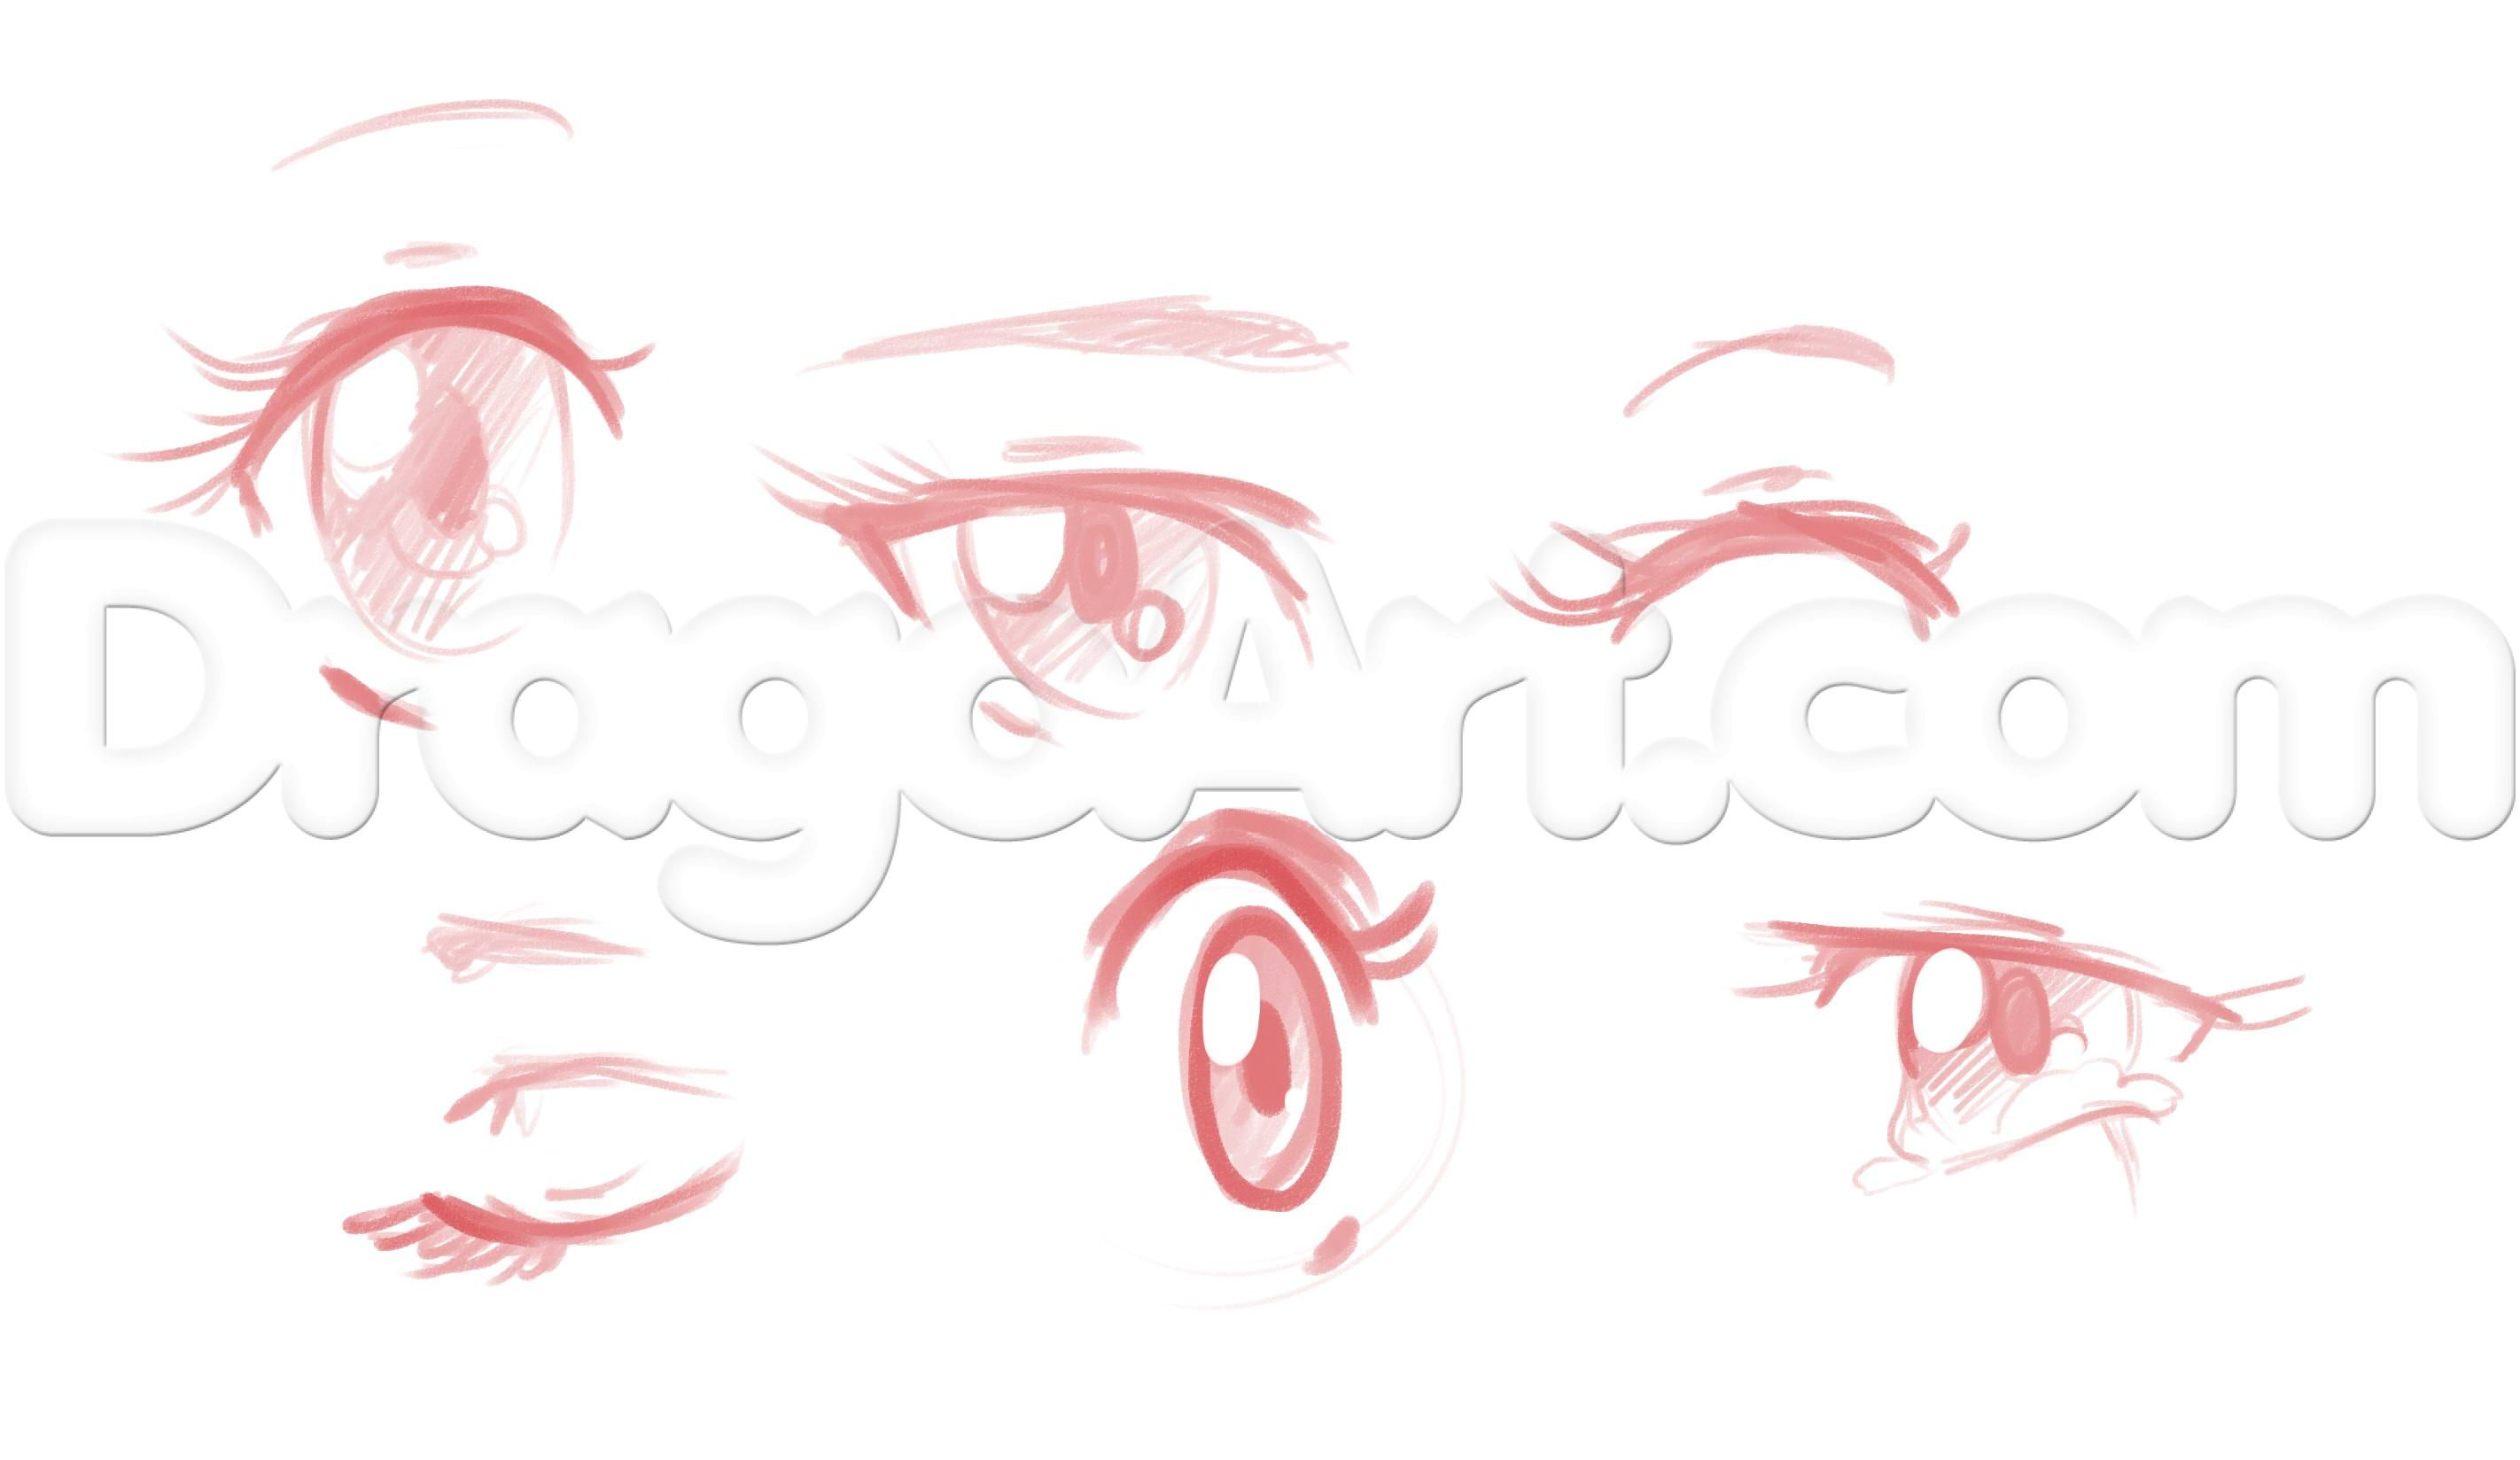 2844x1648 How To Draw Anime Girl Faces, Step By Step, Anime Heads, Anime